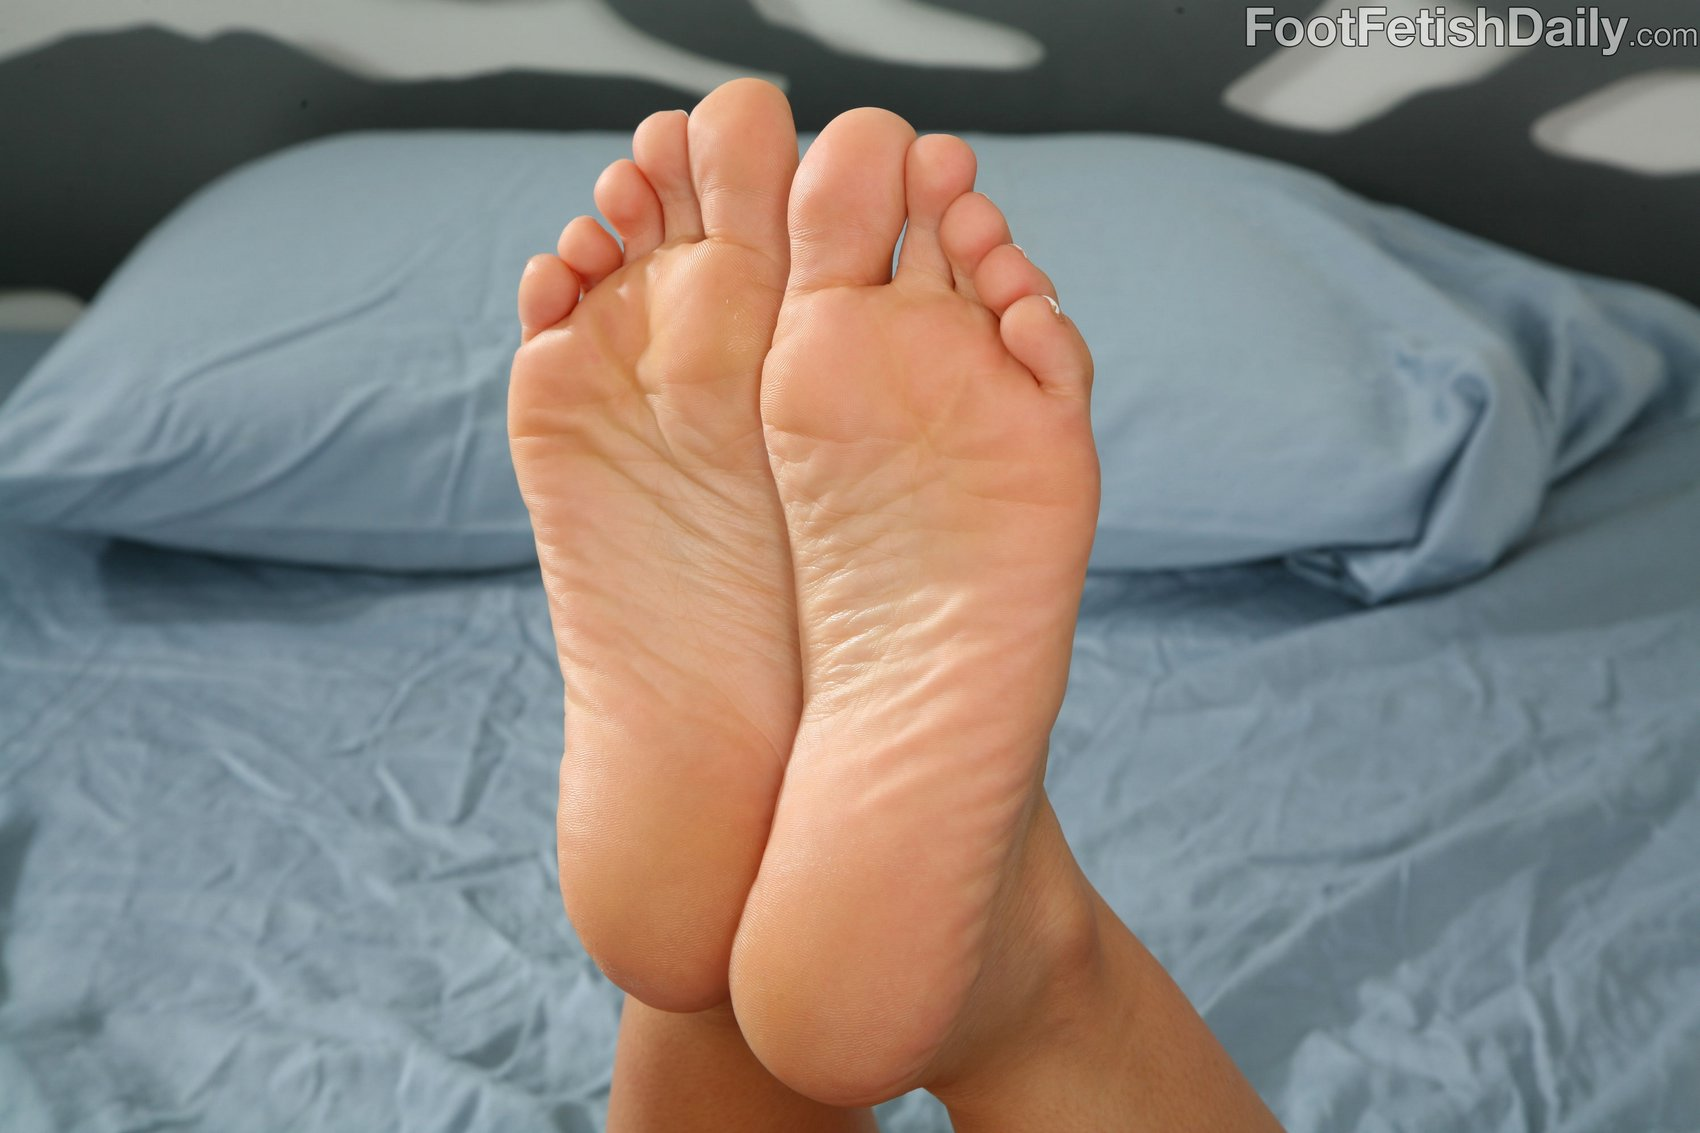 Foot fetish daily alexis breeze essence